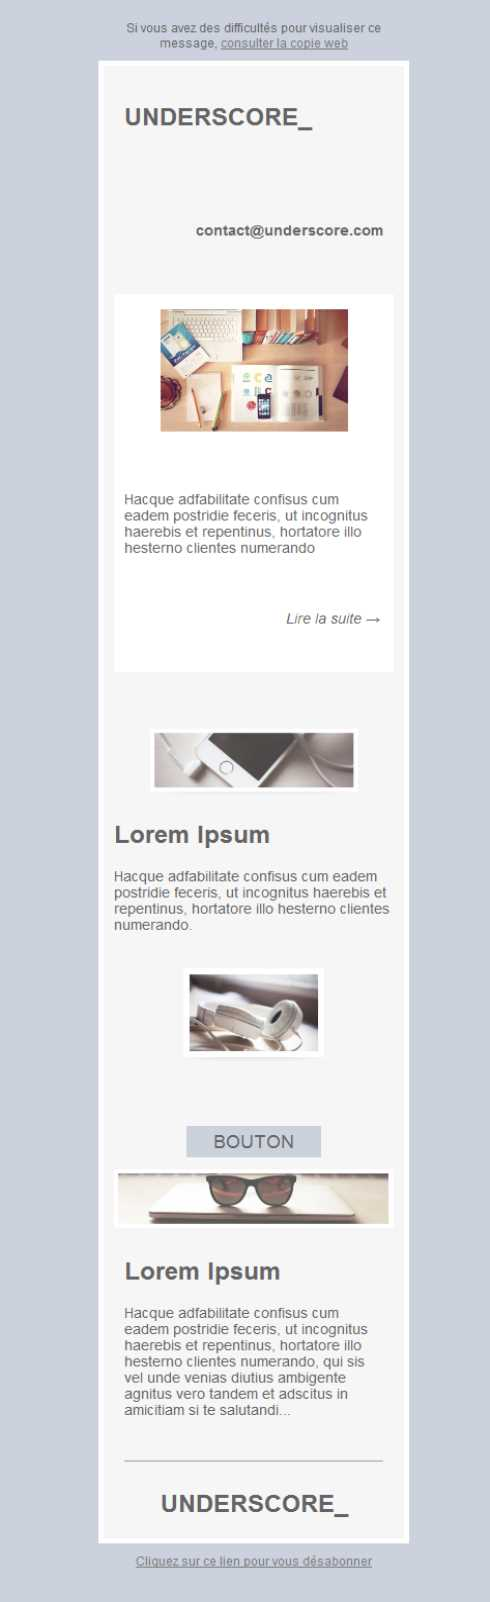 Free email templates - Download design Underscore